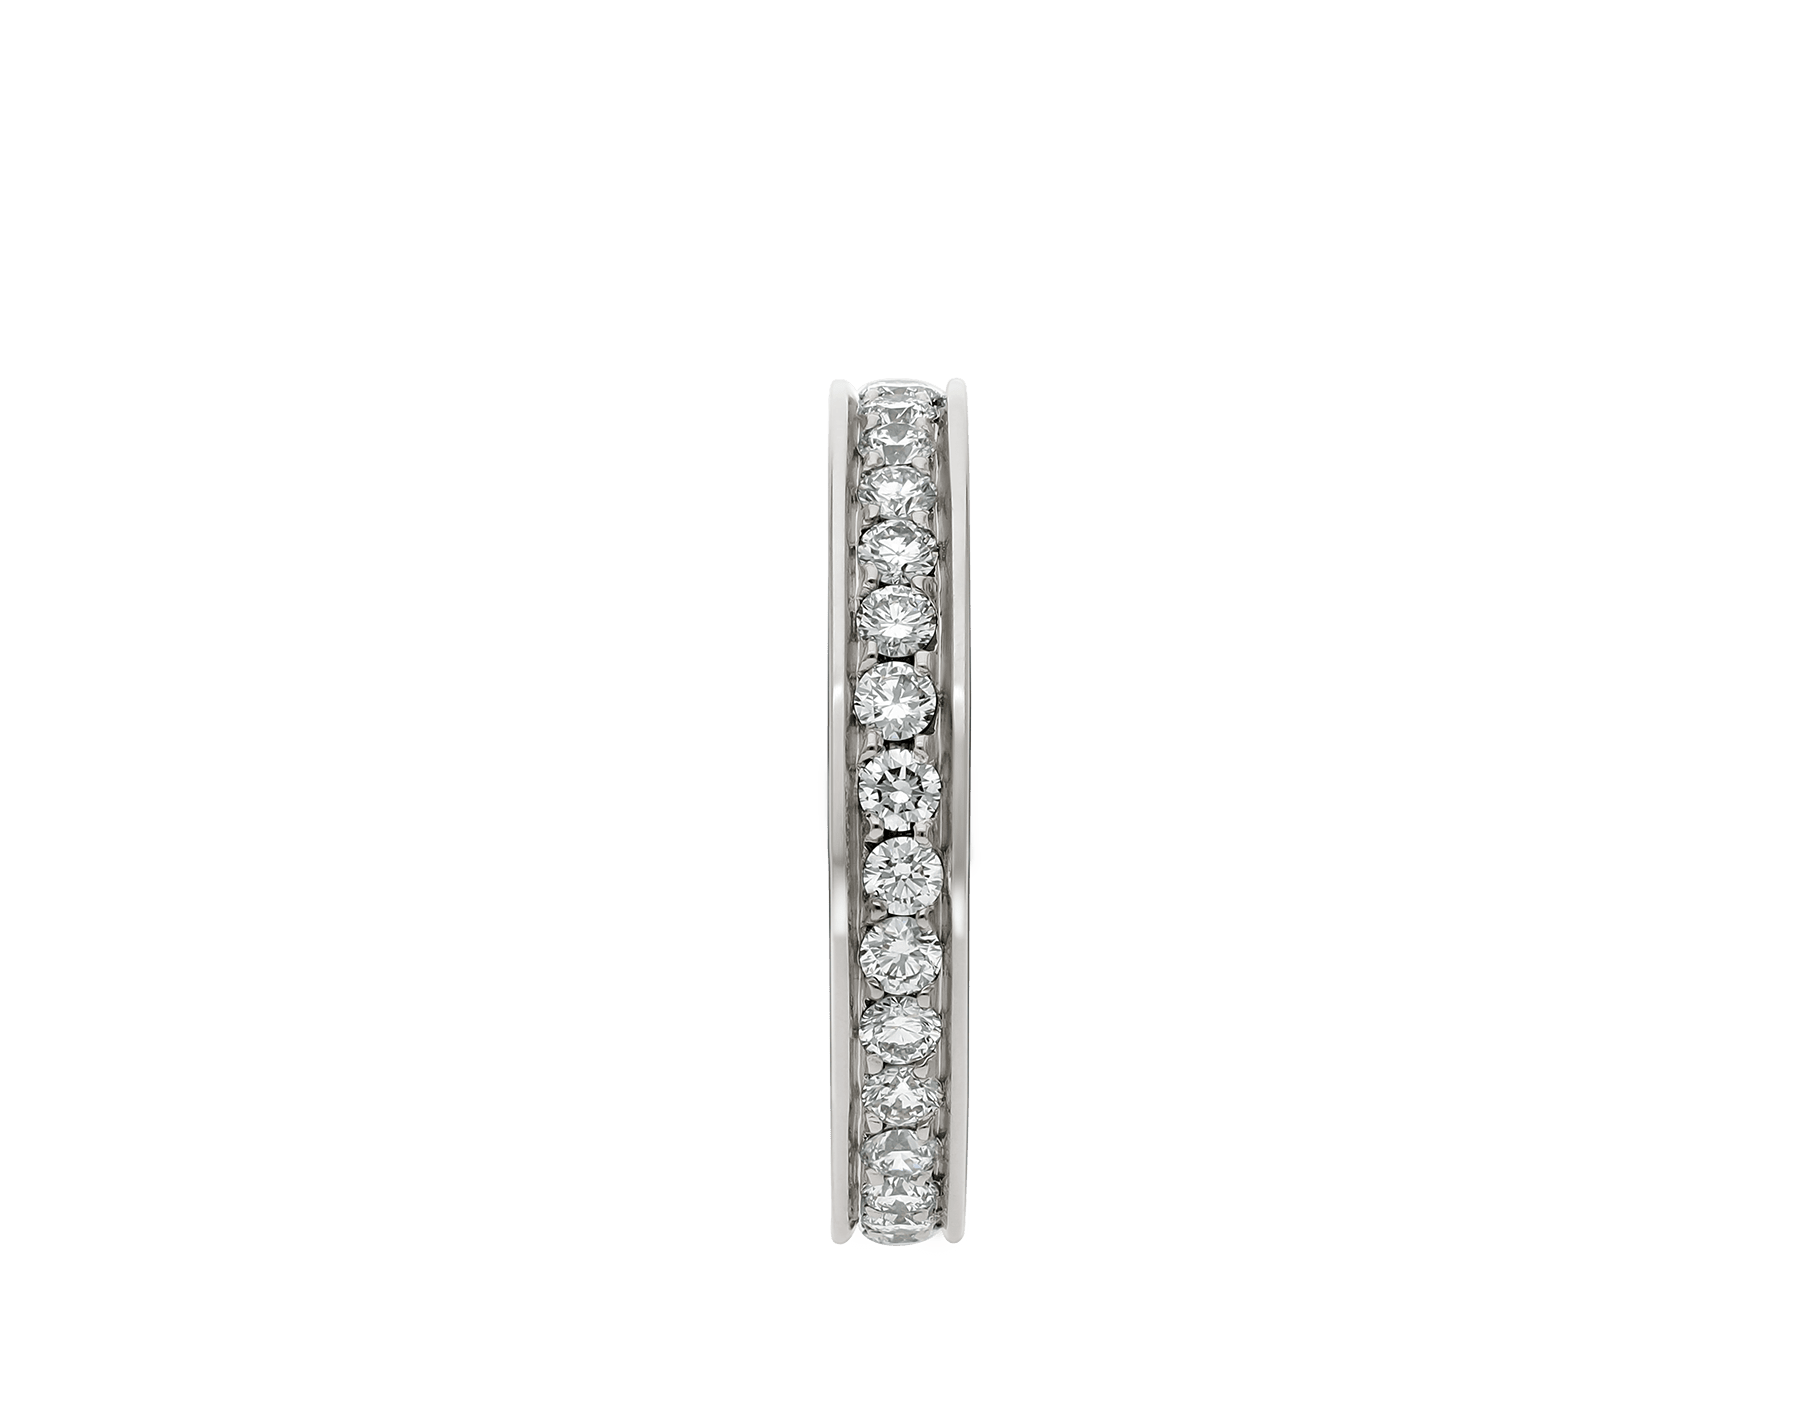 MarryMe platinum wedding band with full pavé diamonds AN852592 image 2